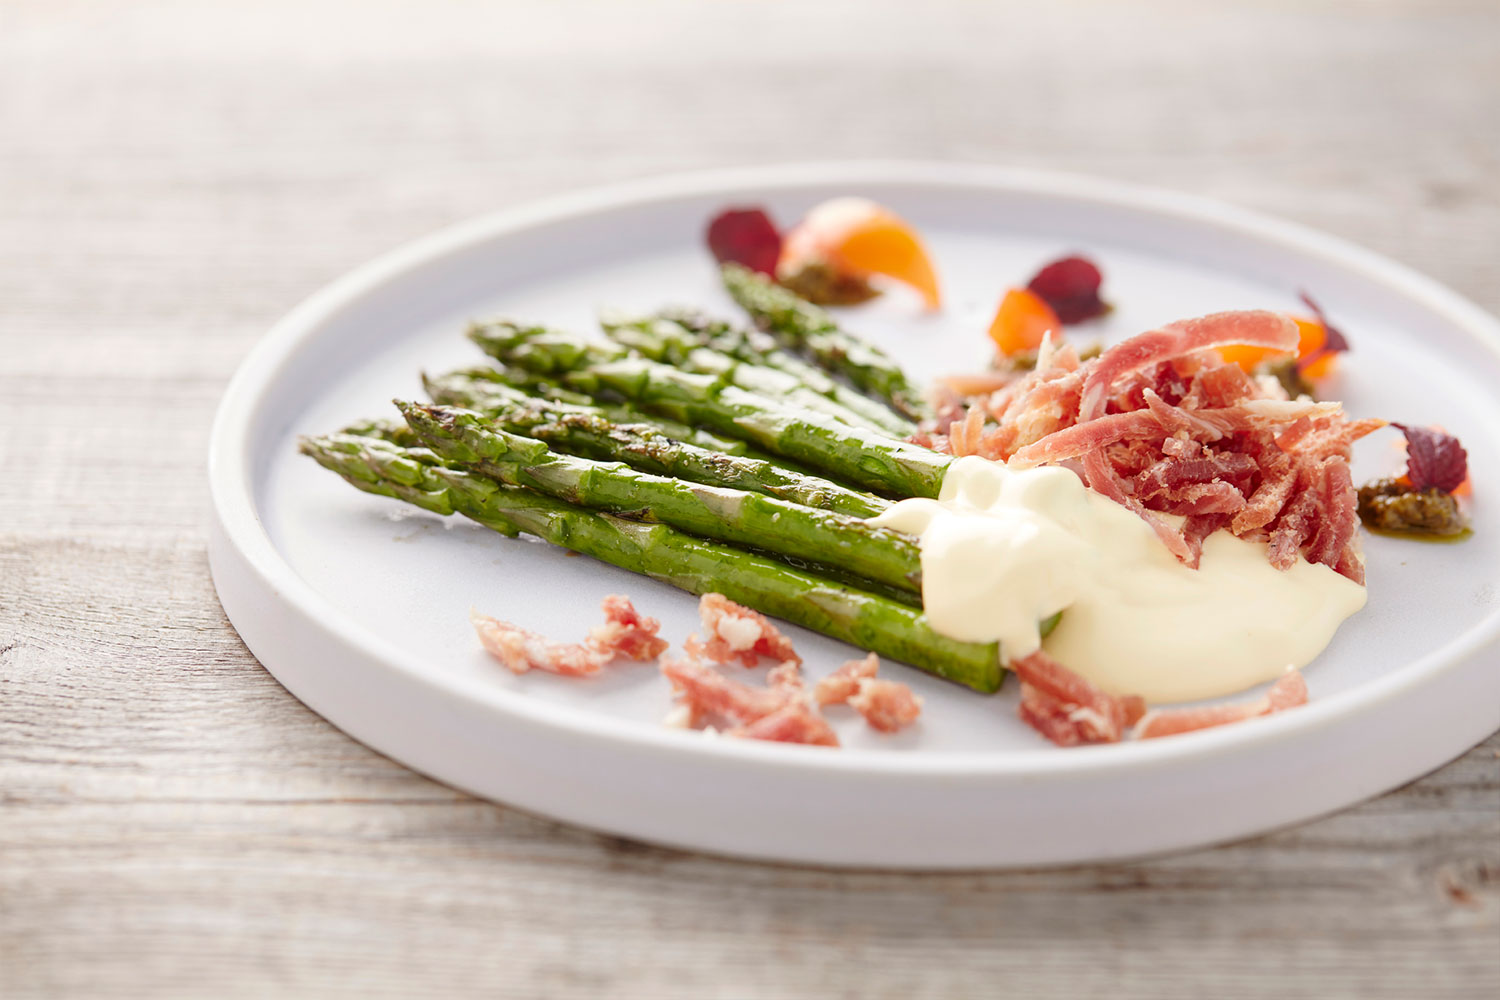 Asparagus with ham and pesto